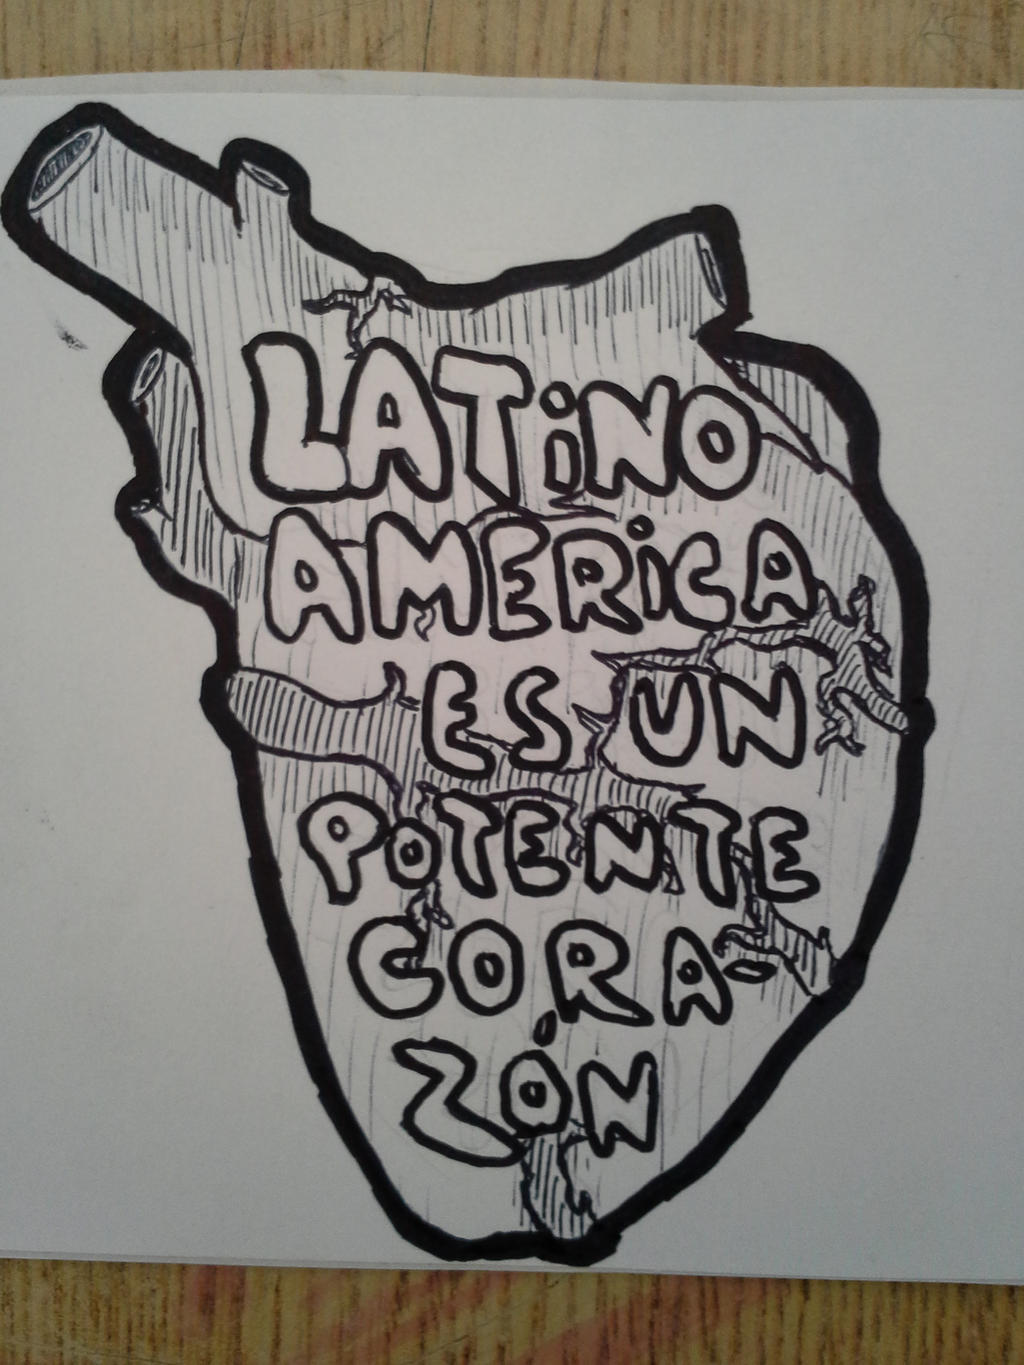 Latinoamerica Es Un Potente Corazon by MrSimonConnor